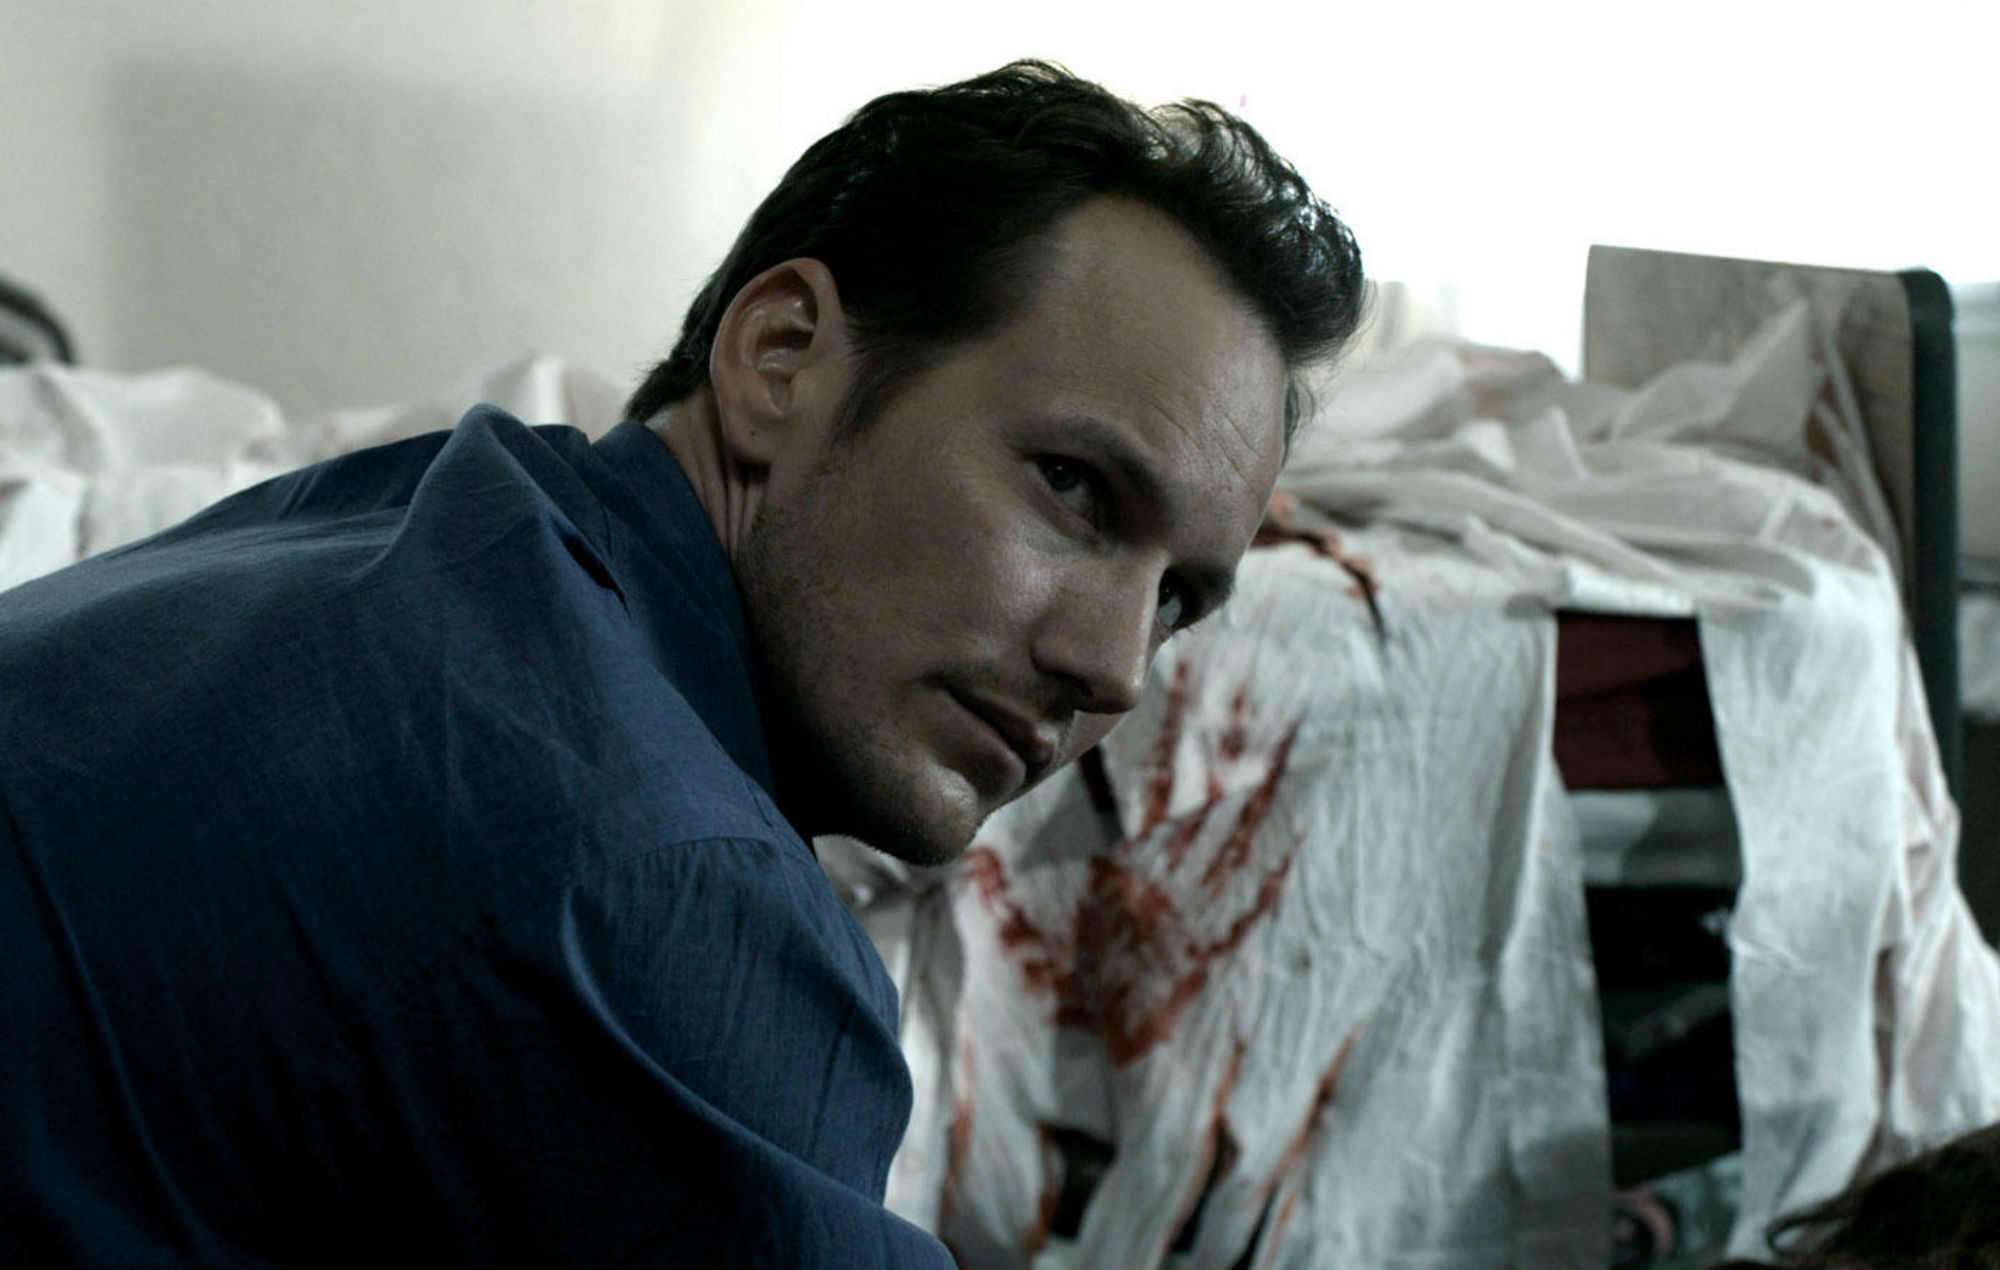 Insidious 5 In The Works With Patrick Wilson Directing Confirms Blumhouse